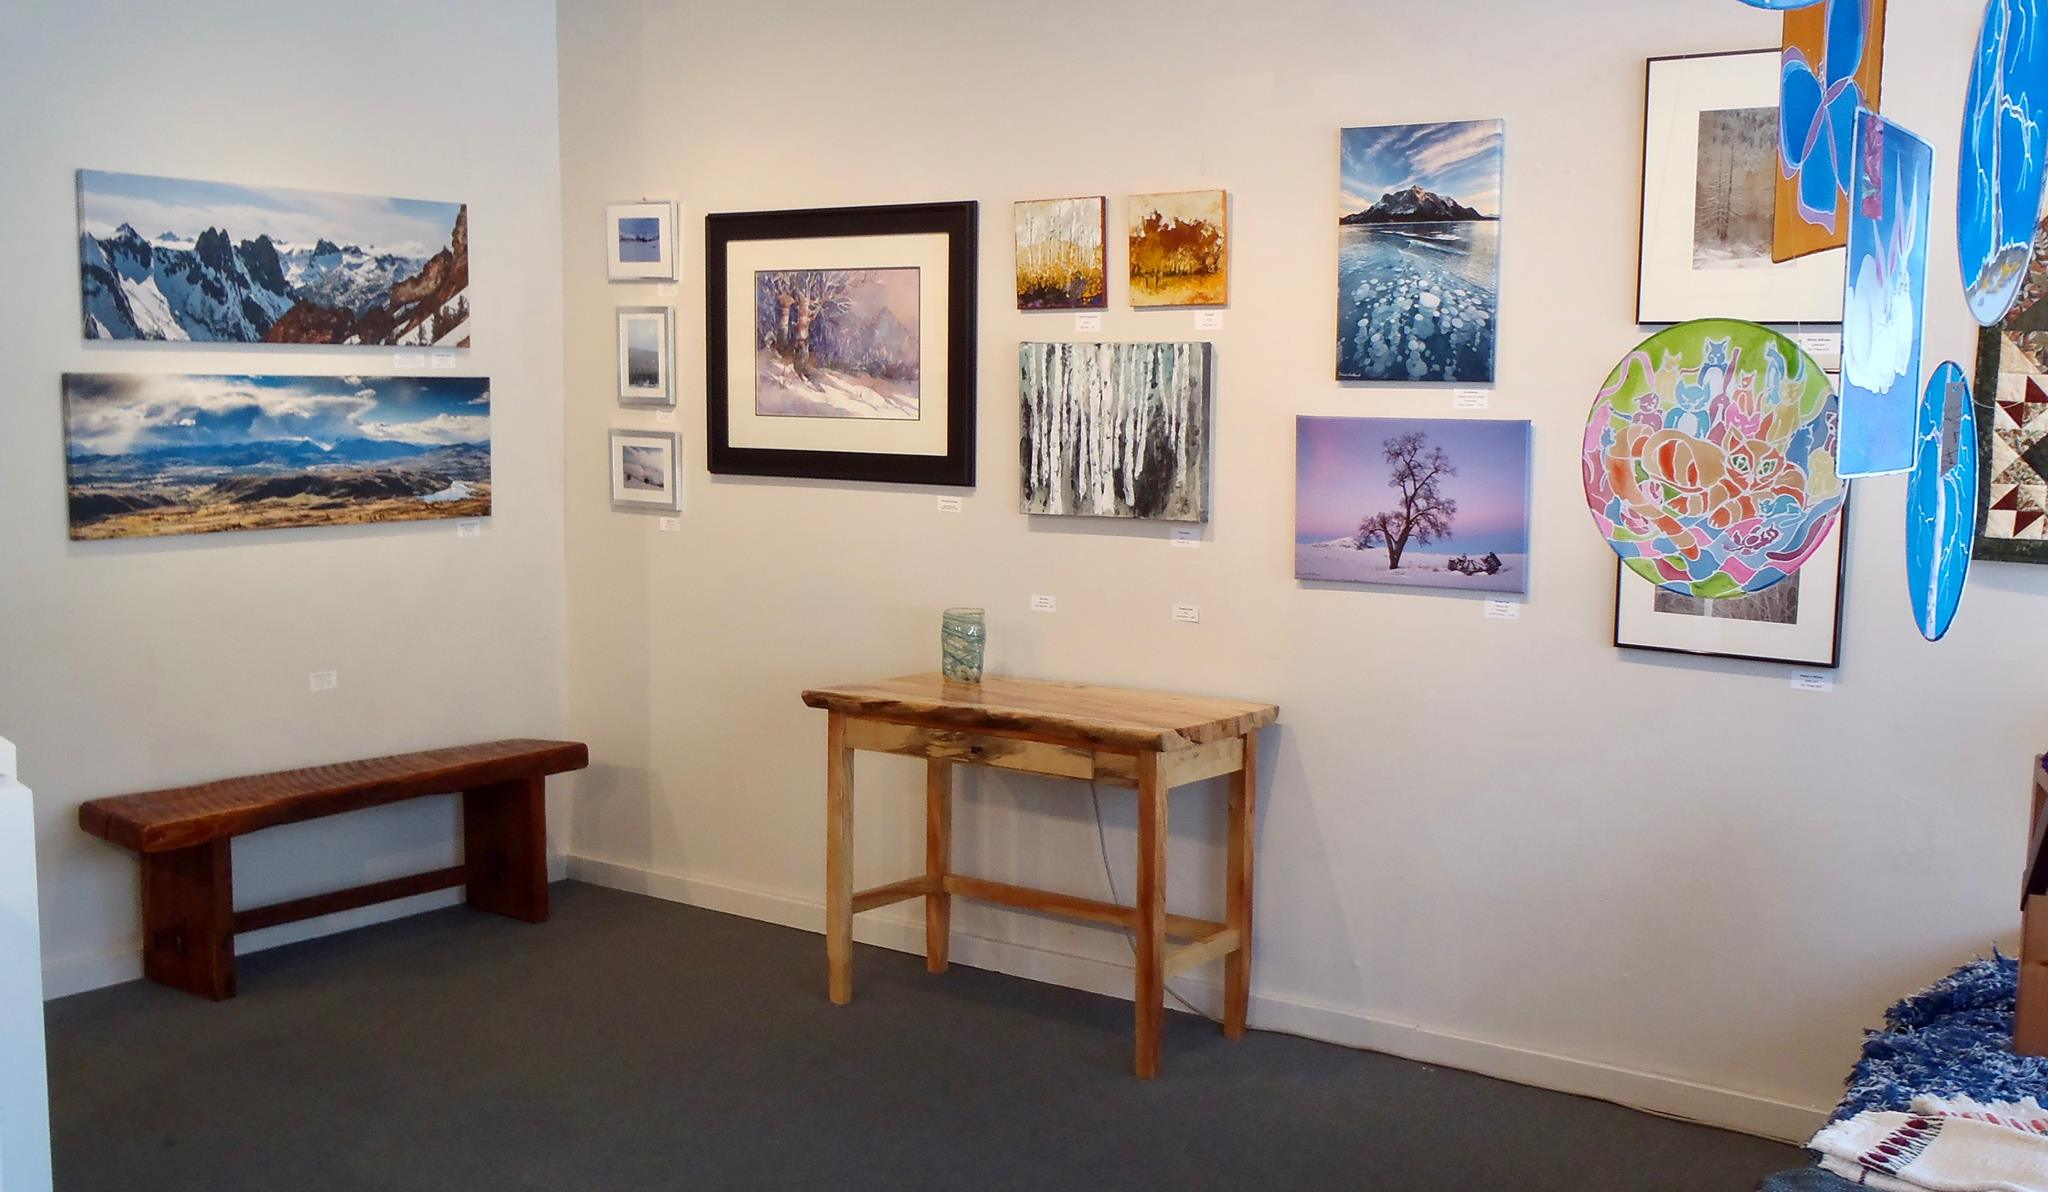 winthrop gallery arts and culture local artist